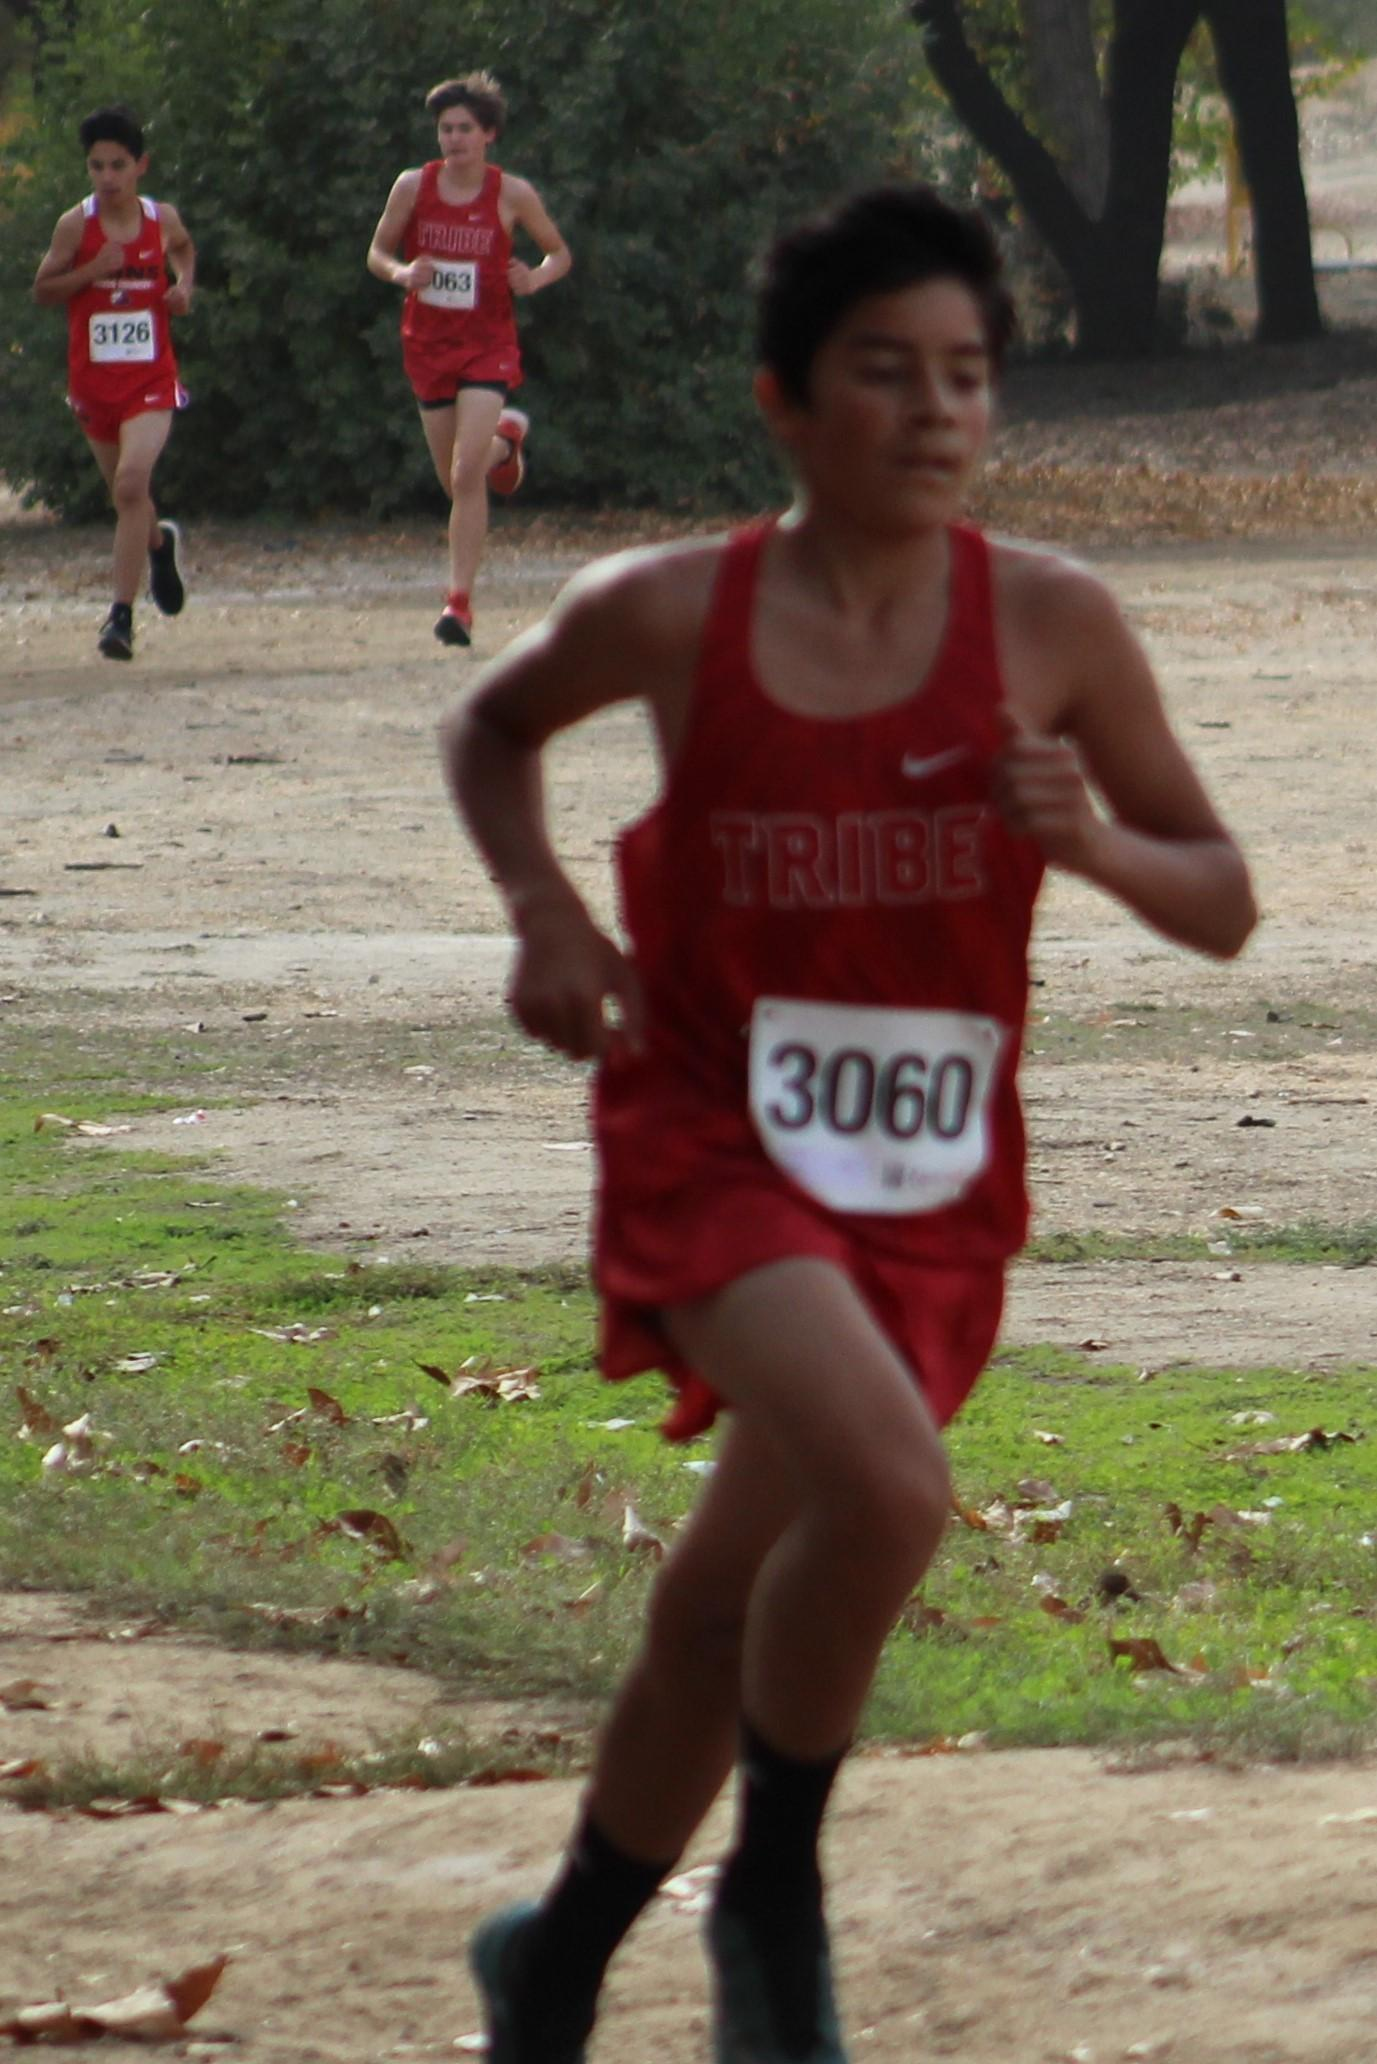 Issac Rivera leading the race